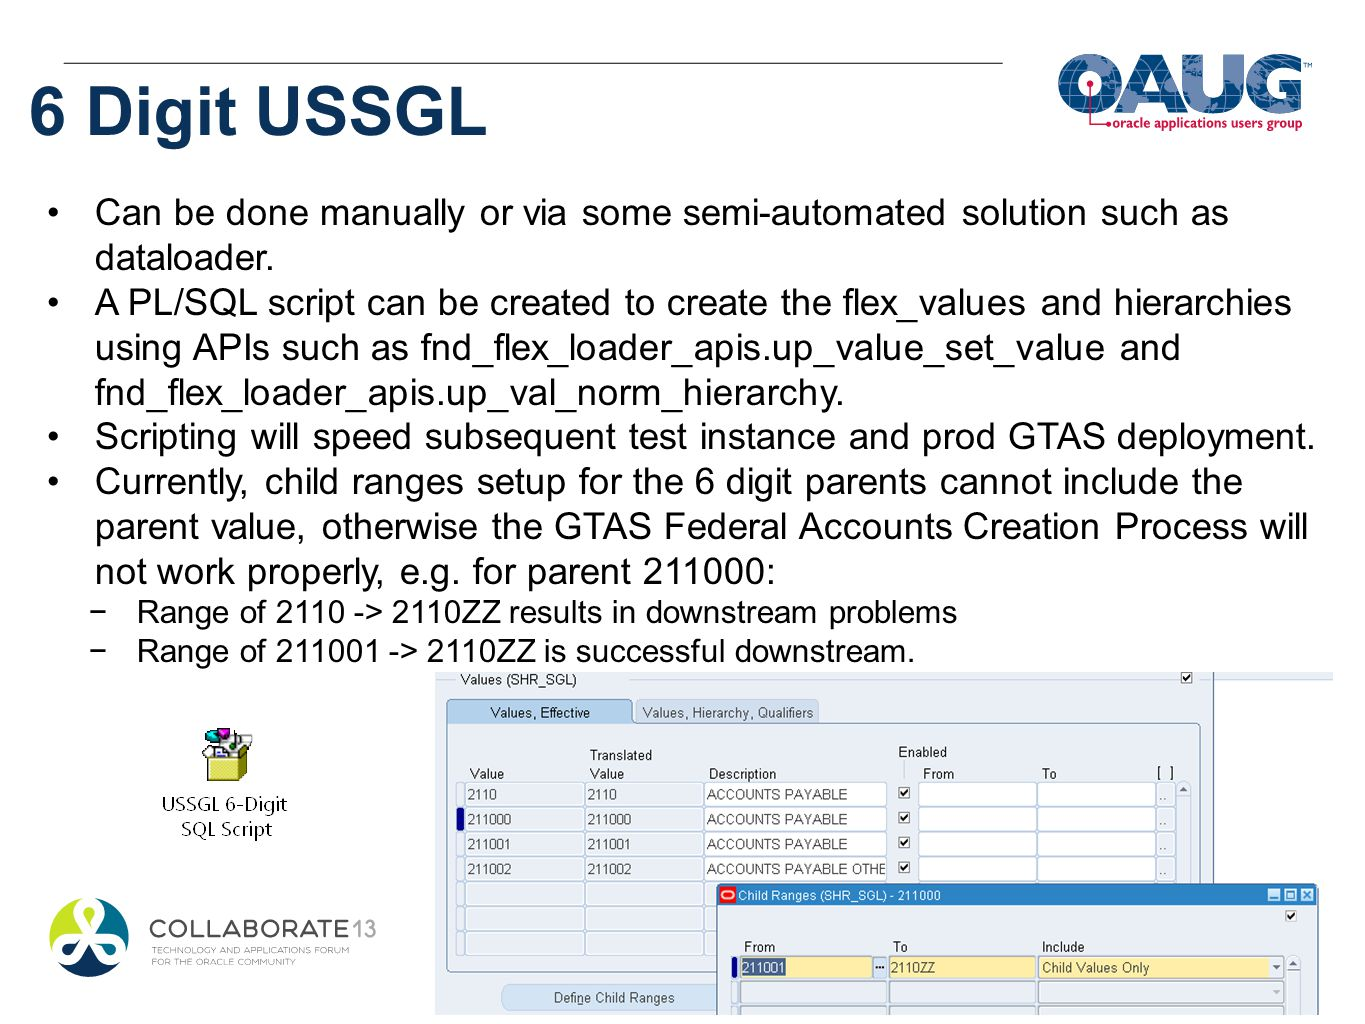 6 Digit USSGL Can be done manually or via some semi-automated solution such as dataloader.